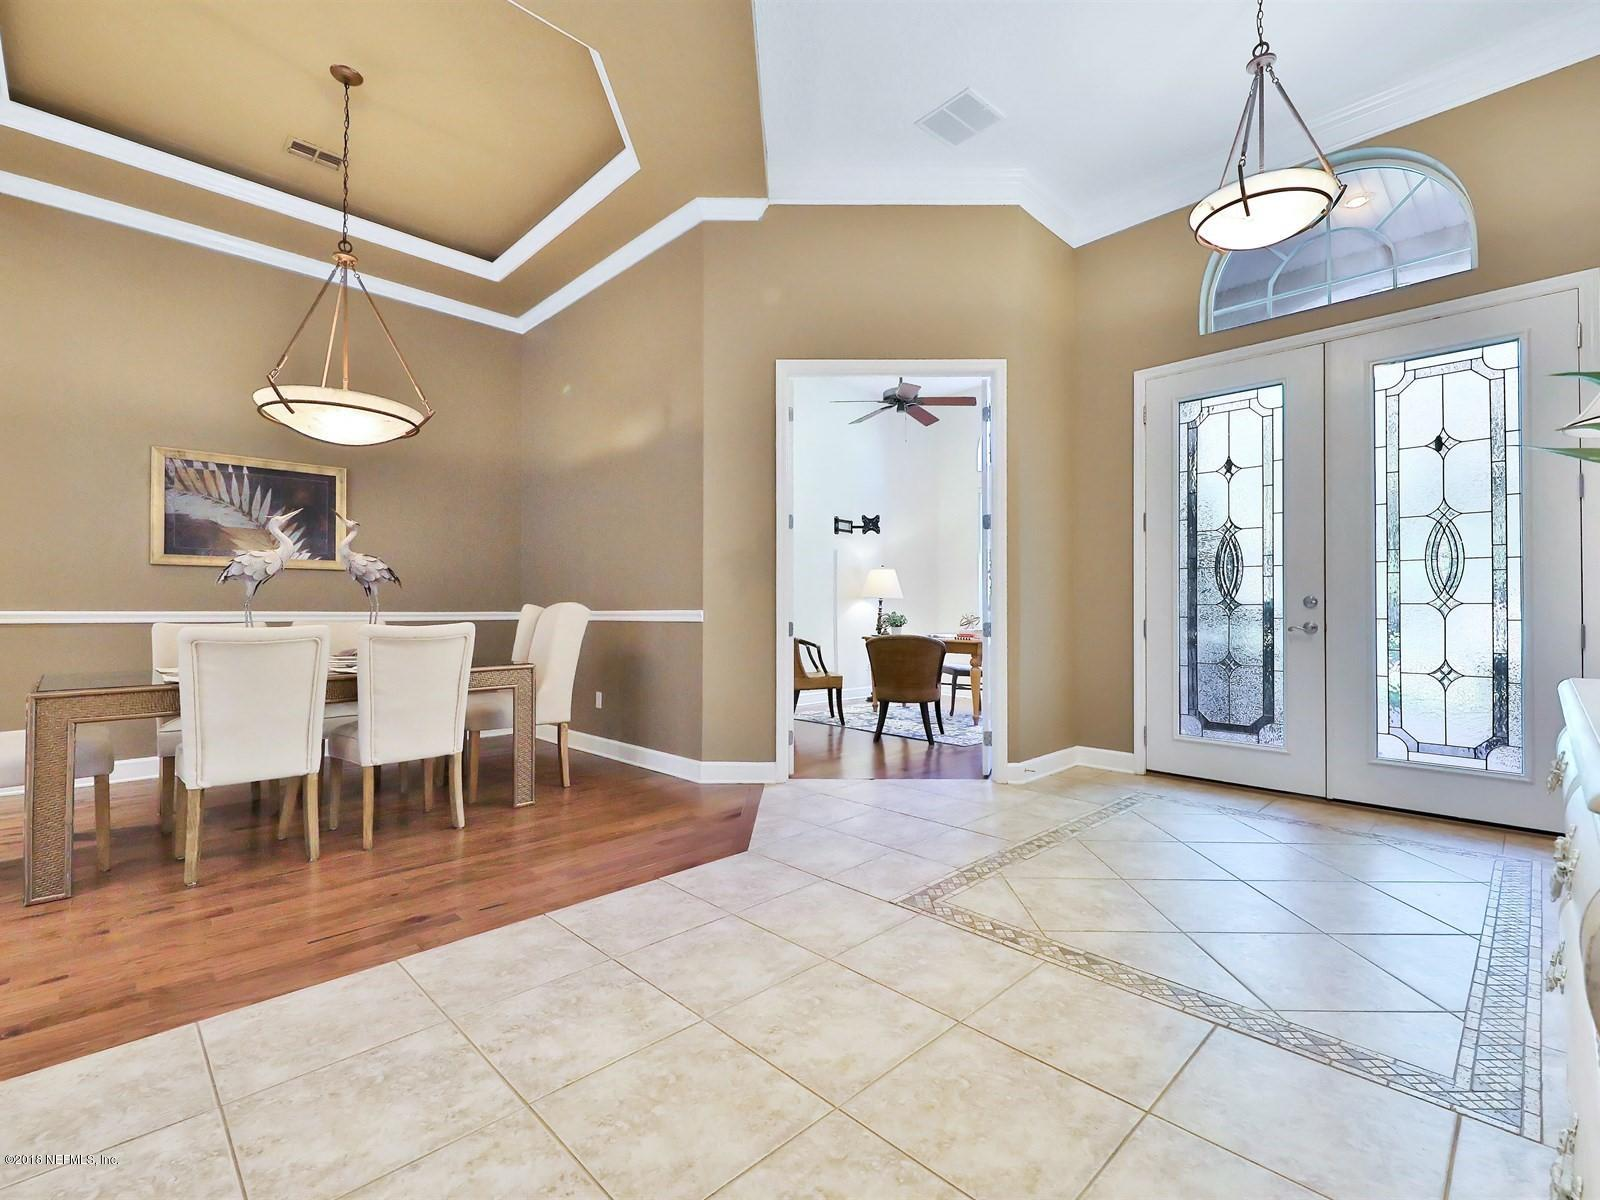 215 PARKSIDE, ST AUGUSTINE, FLORIDA 32095, 4 Bedrooms Bedrooms, ,3 BathroomsBathrooms,Residential - single family,For sale,PARKSIDE,938585